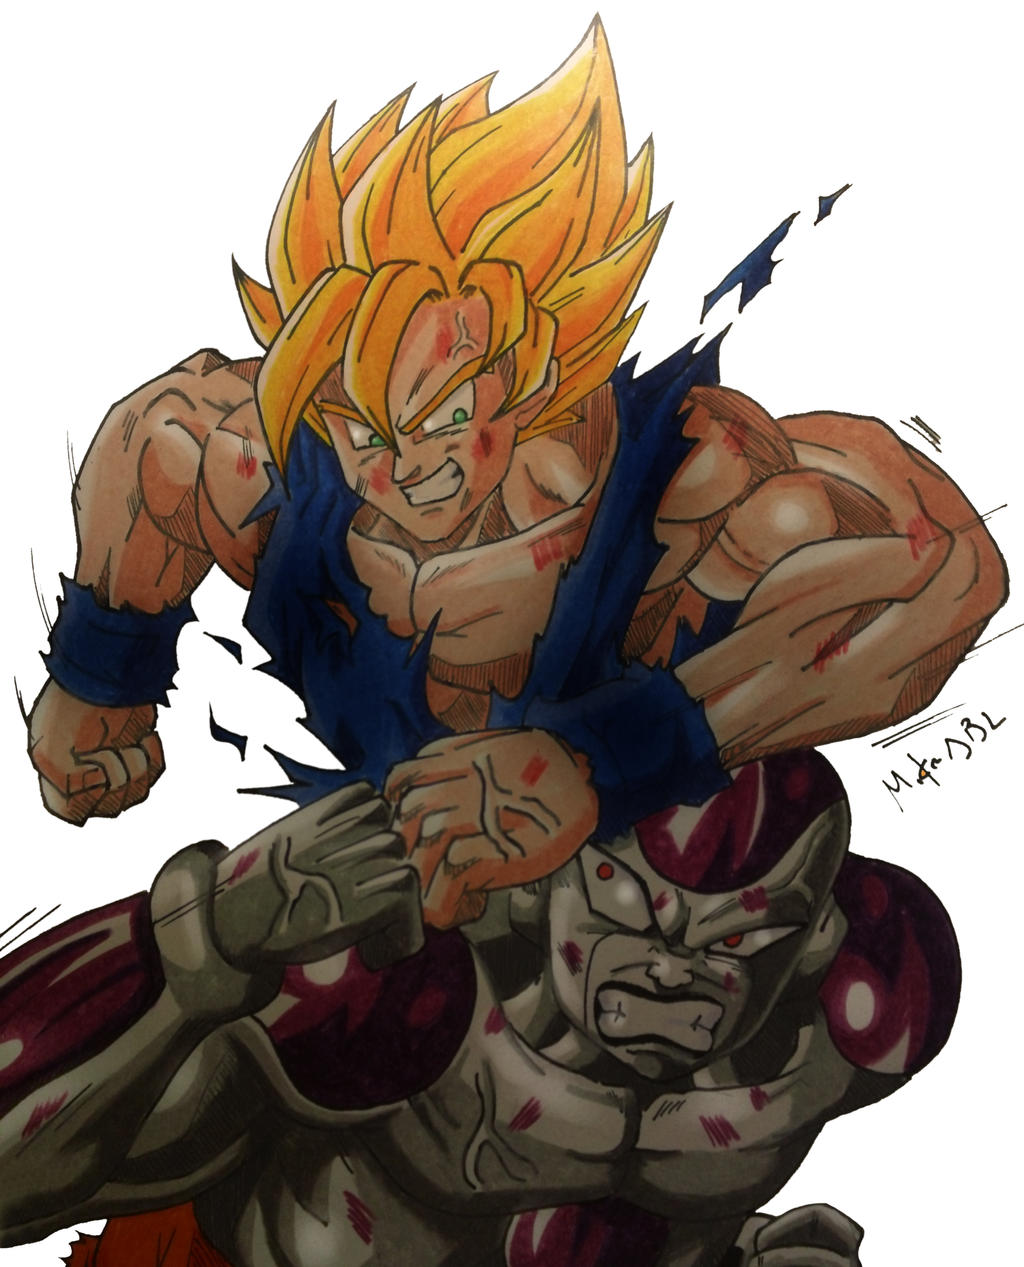 Goku vs freezer by mikees on deviantart for Freezer piccolo